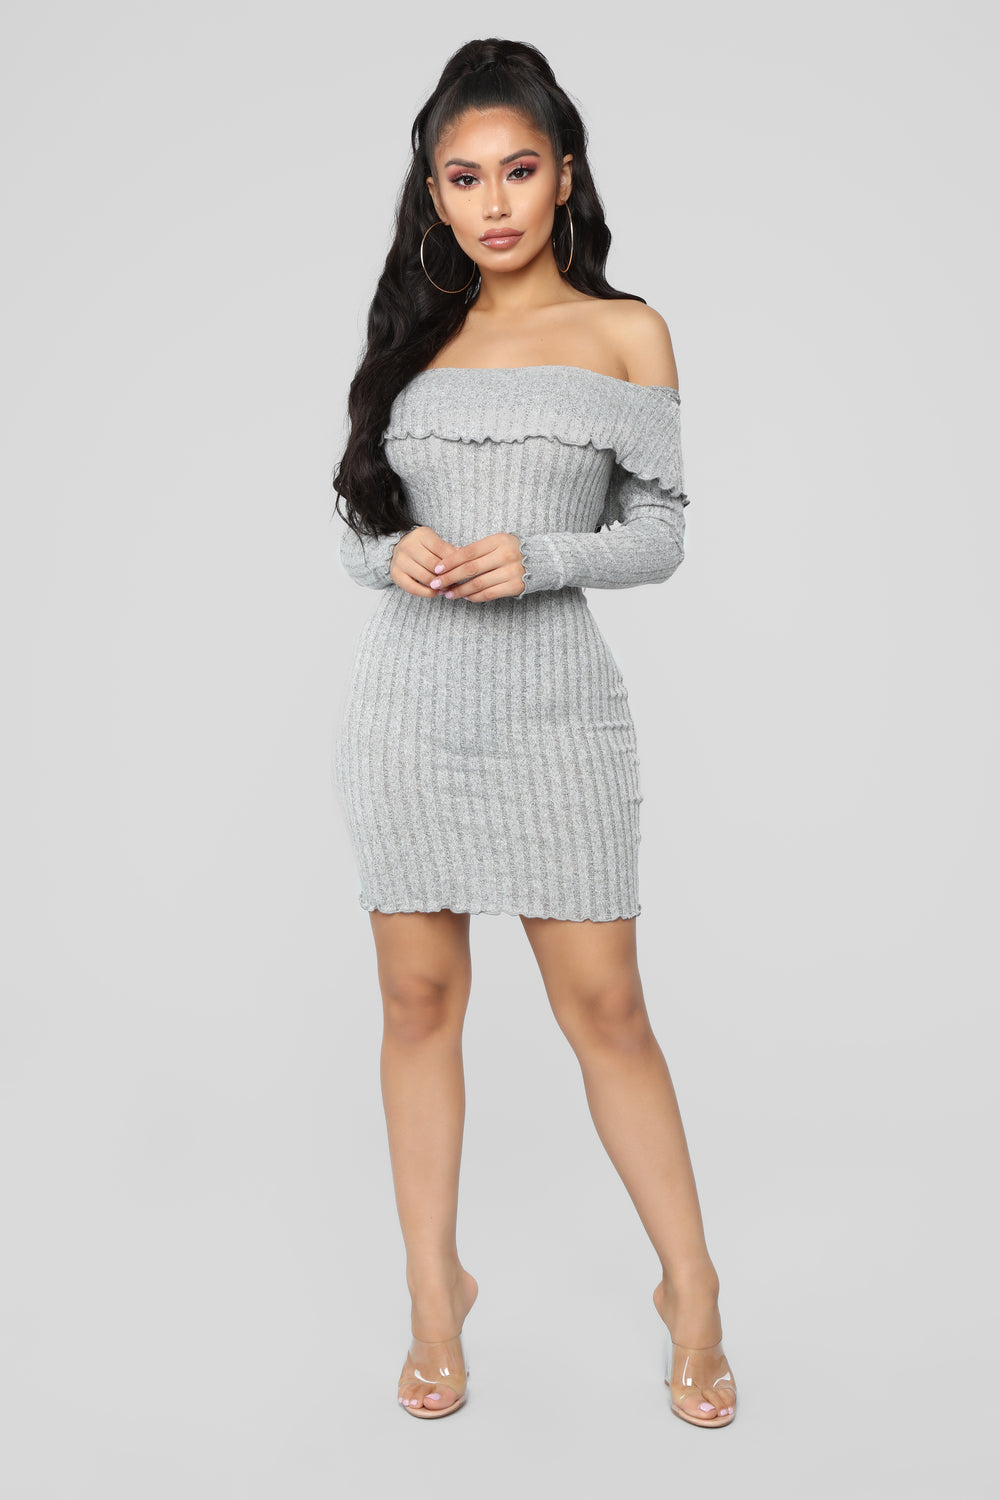 7eff60cd4 Be My Baby Off Shoulder Dress - Heather Grey